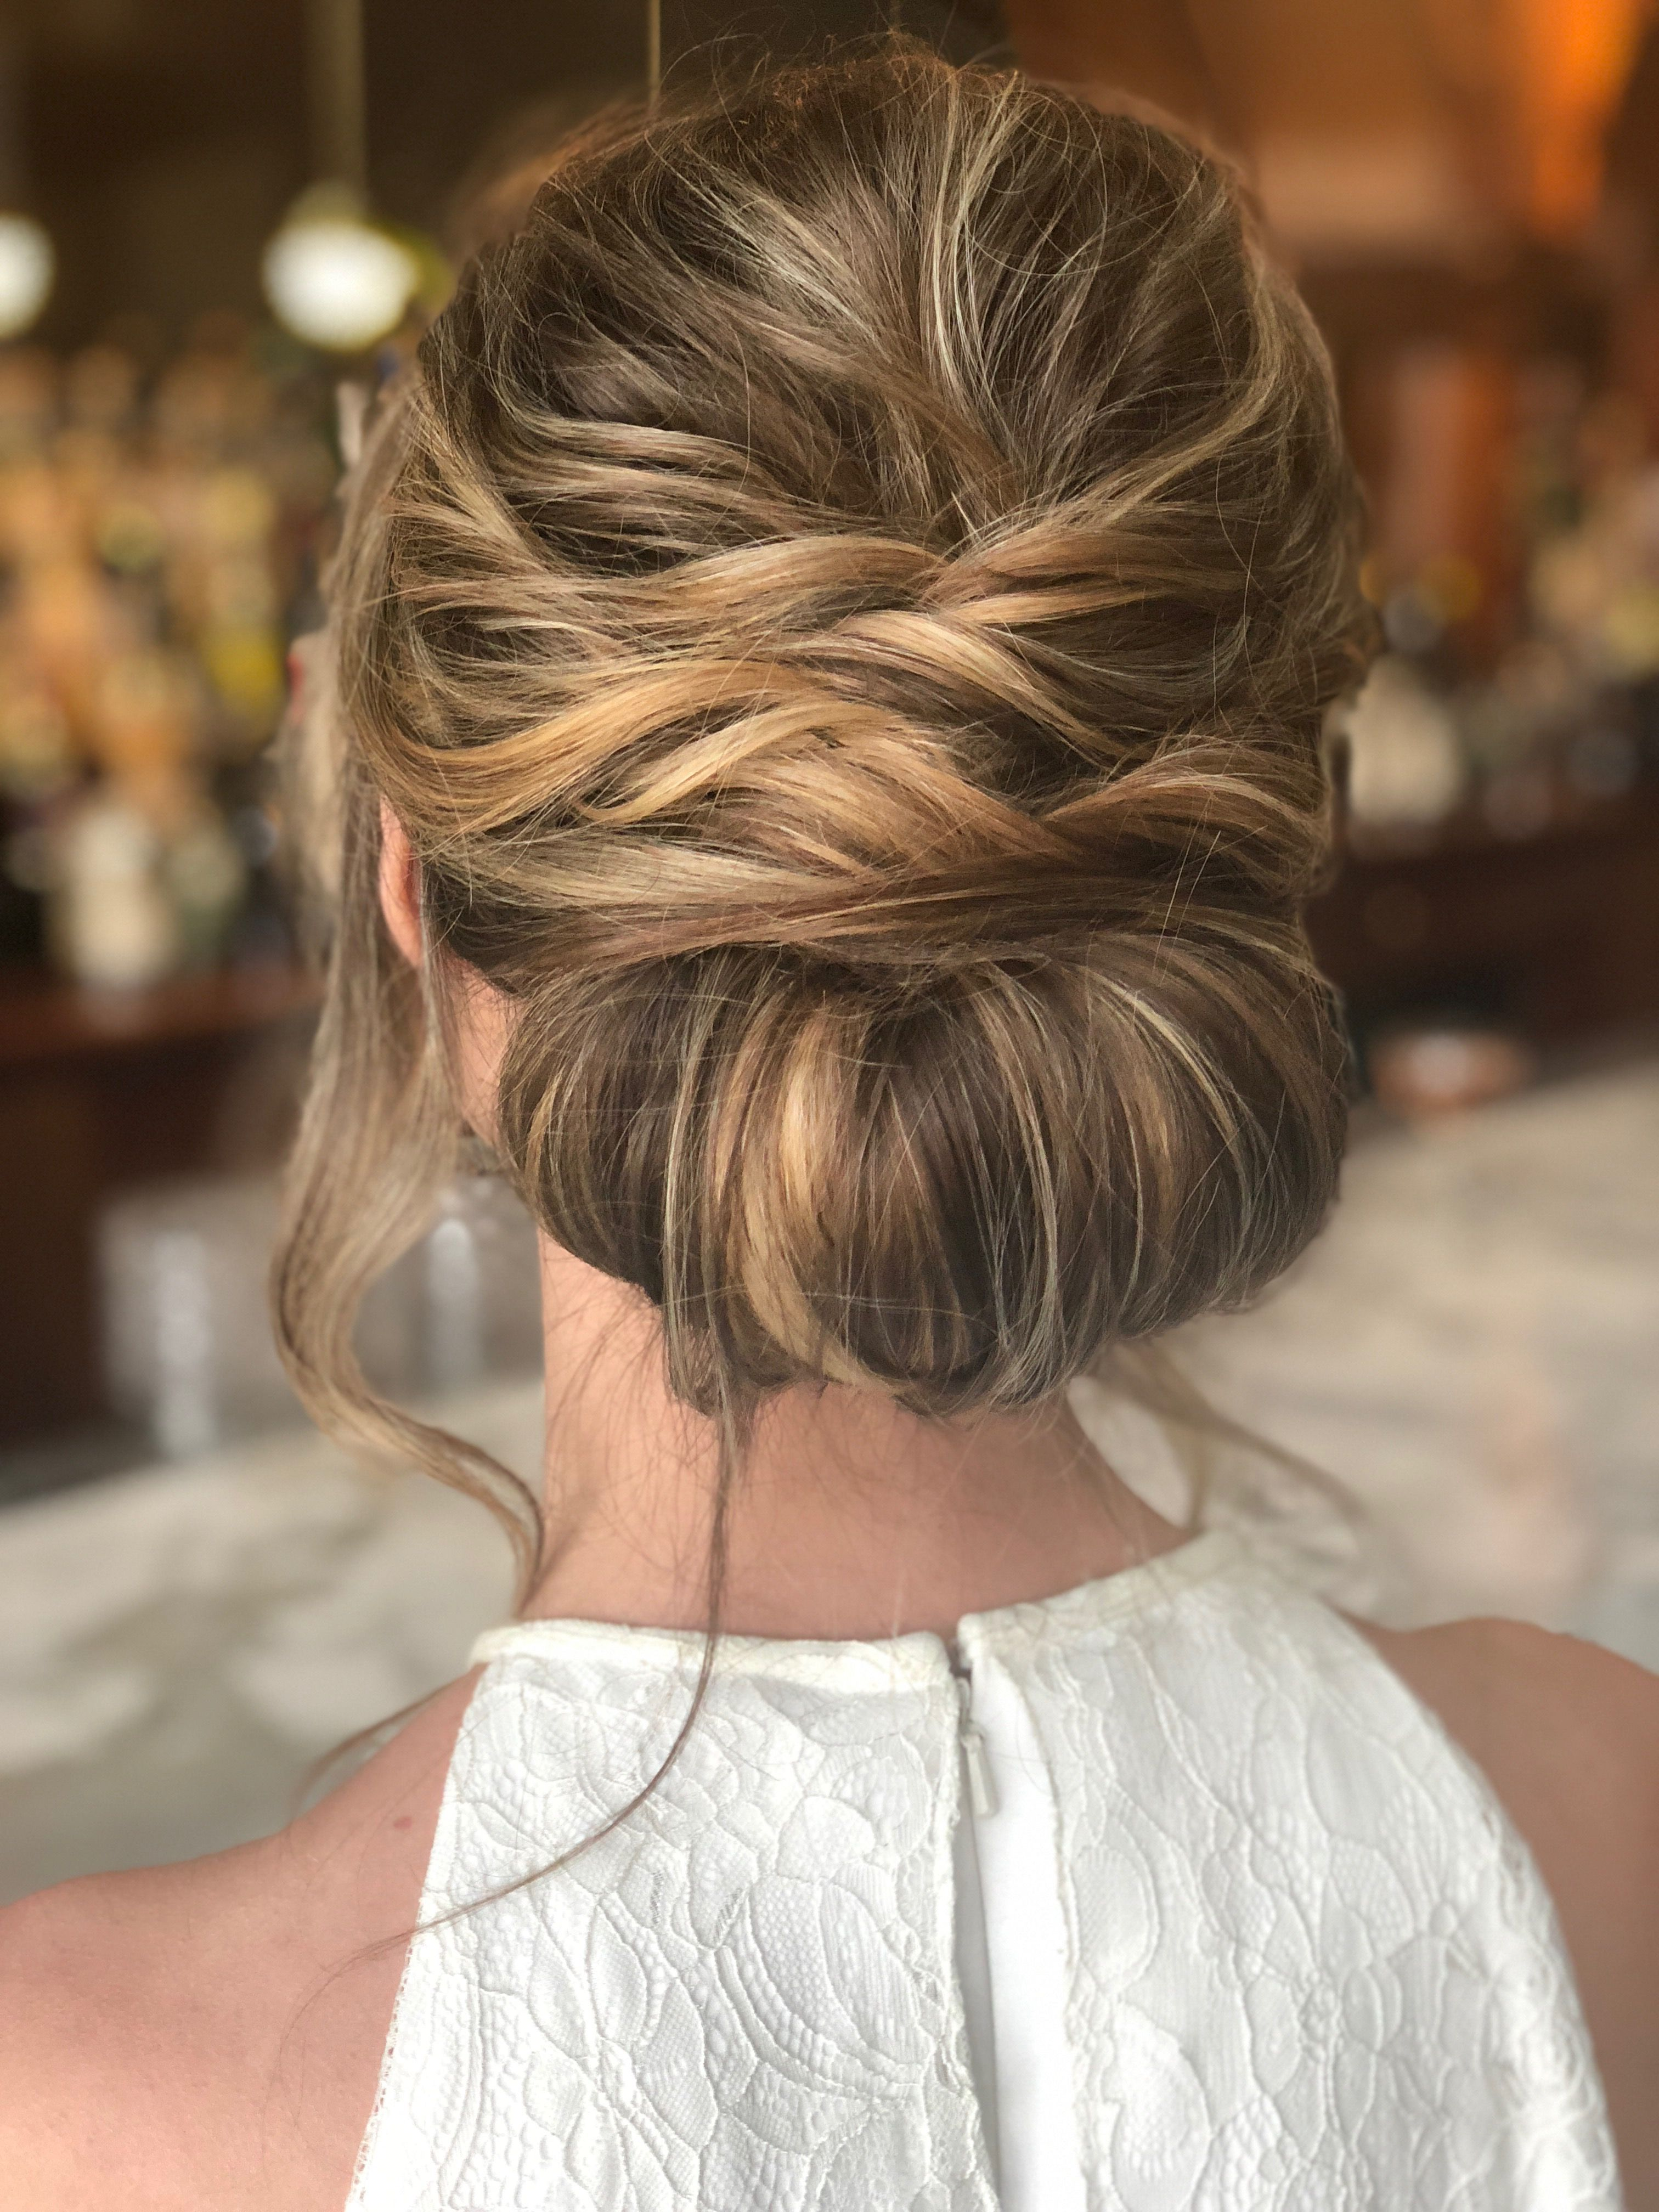 Pin By Tiffany Ridener On Updo Mother Of The Bride Hair Hair Styles Long Hair Styles